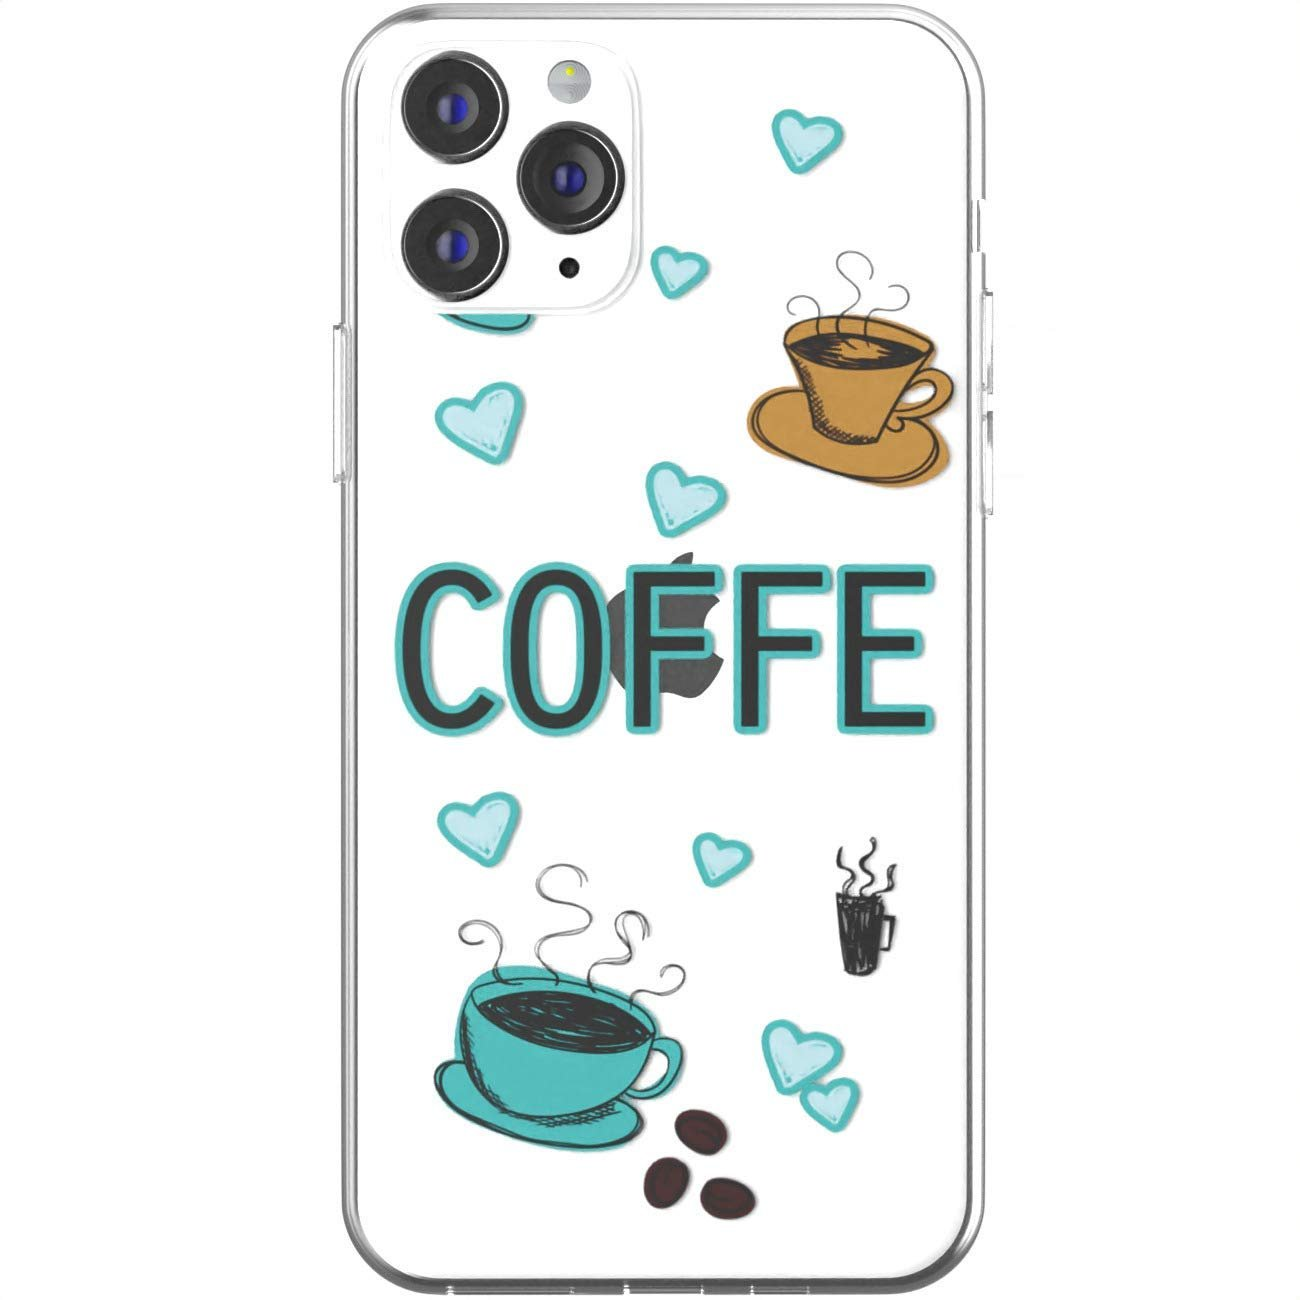 85+ Awesome Gifts for Coffee Lovers in 2020 - 61dc uv9g L. AC SL1300